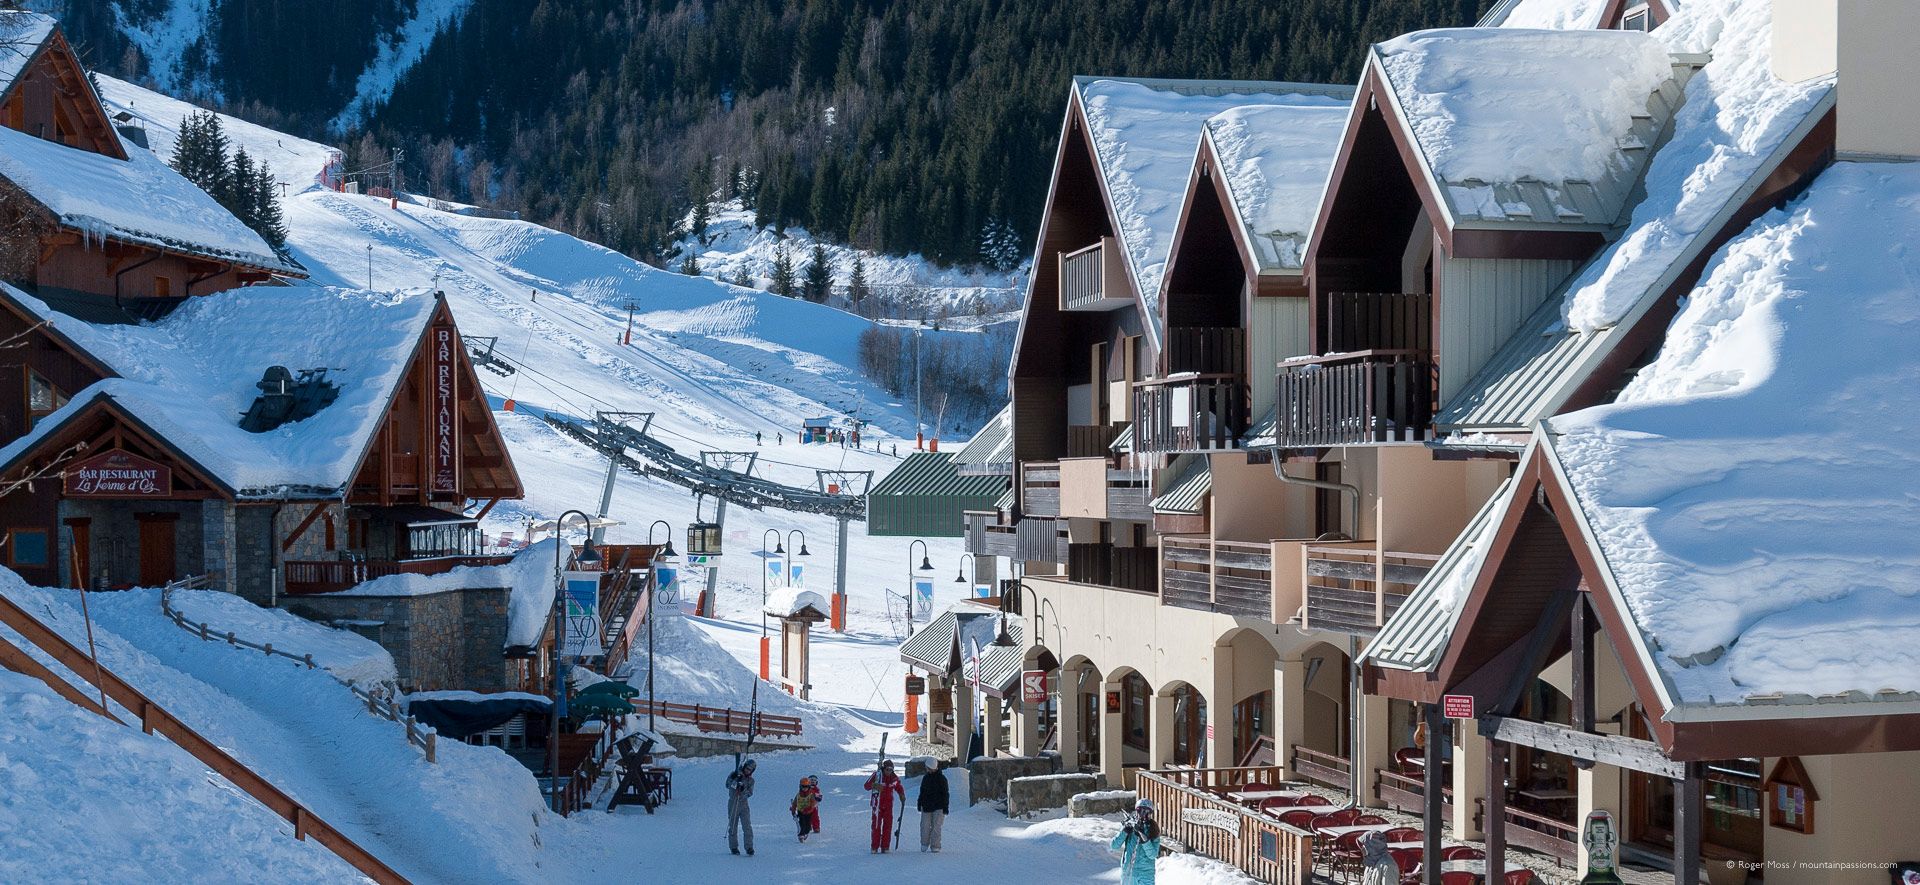 View through ski village to mountainside with visitors